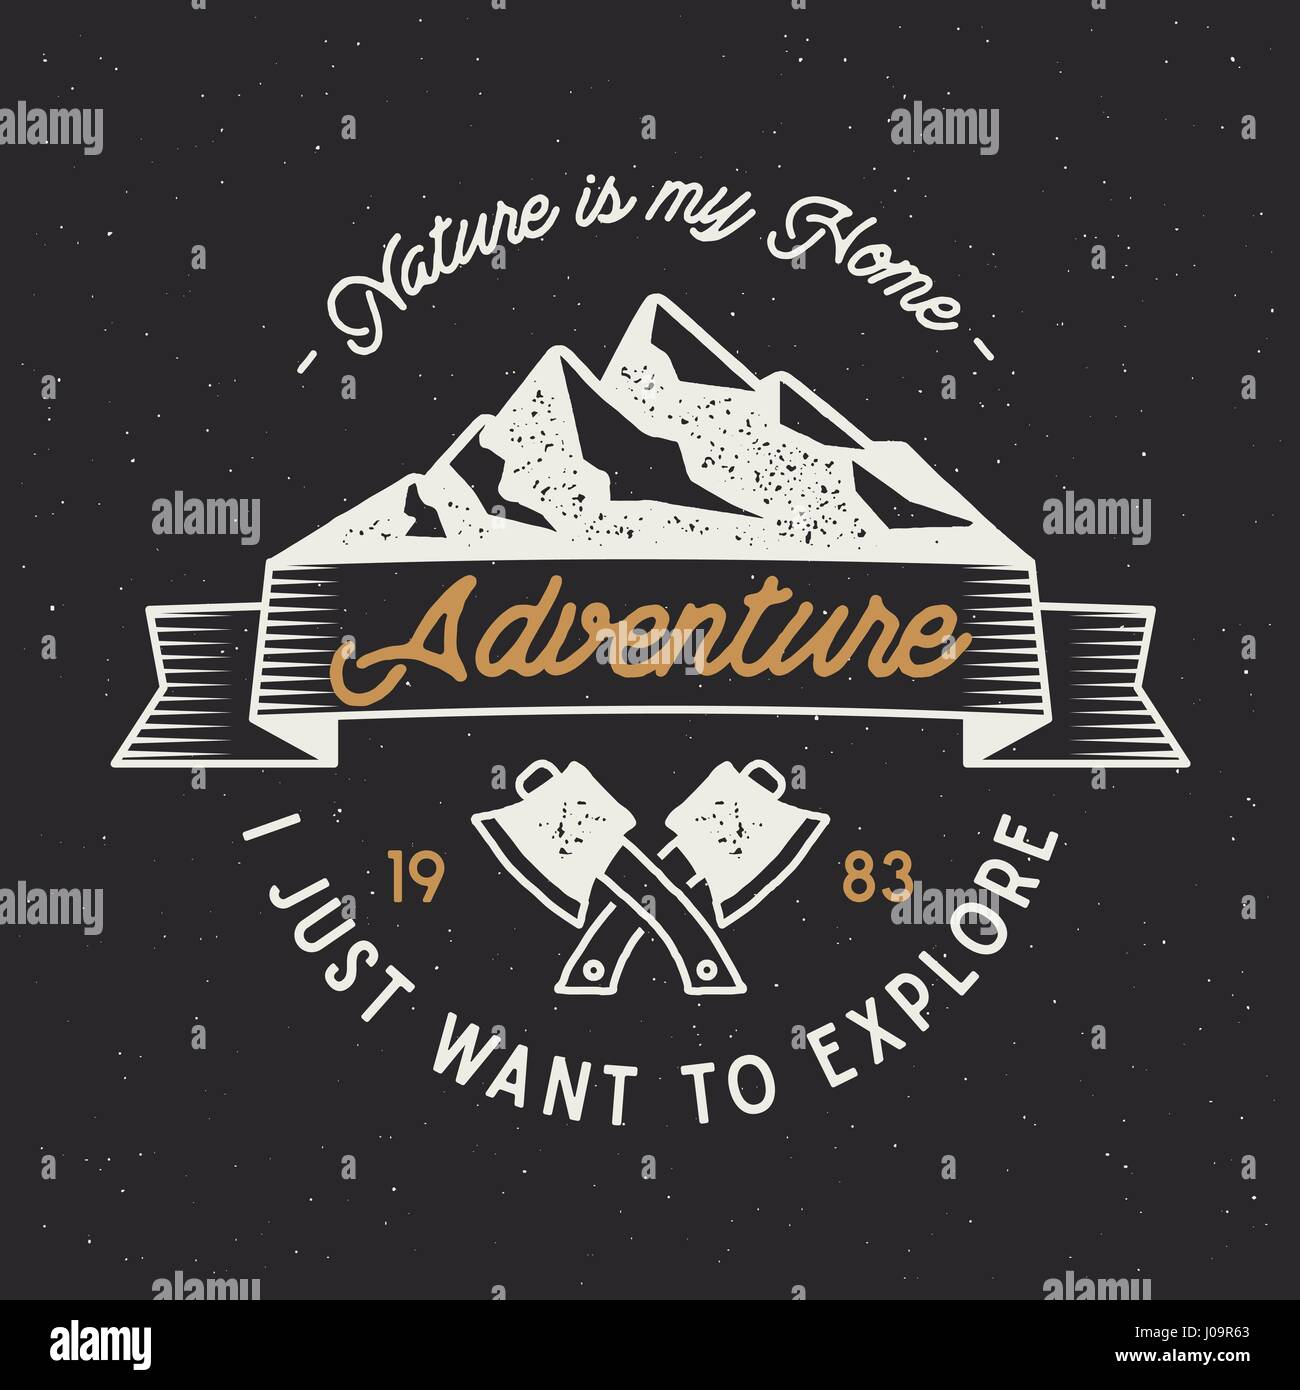 Vintage adventure label. Mountain expedition emblem with crossed axes and typography design 'nature is my home'. - Stock Vector